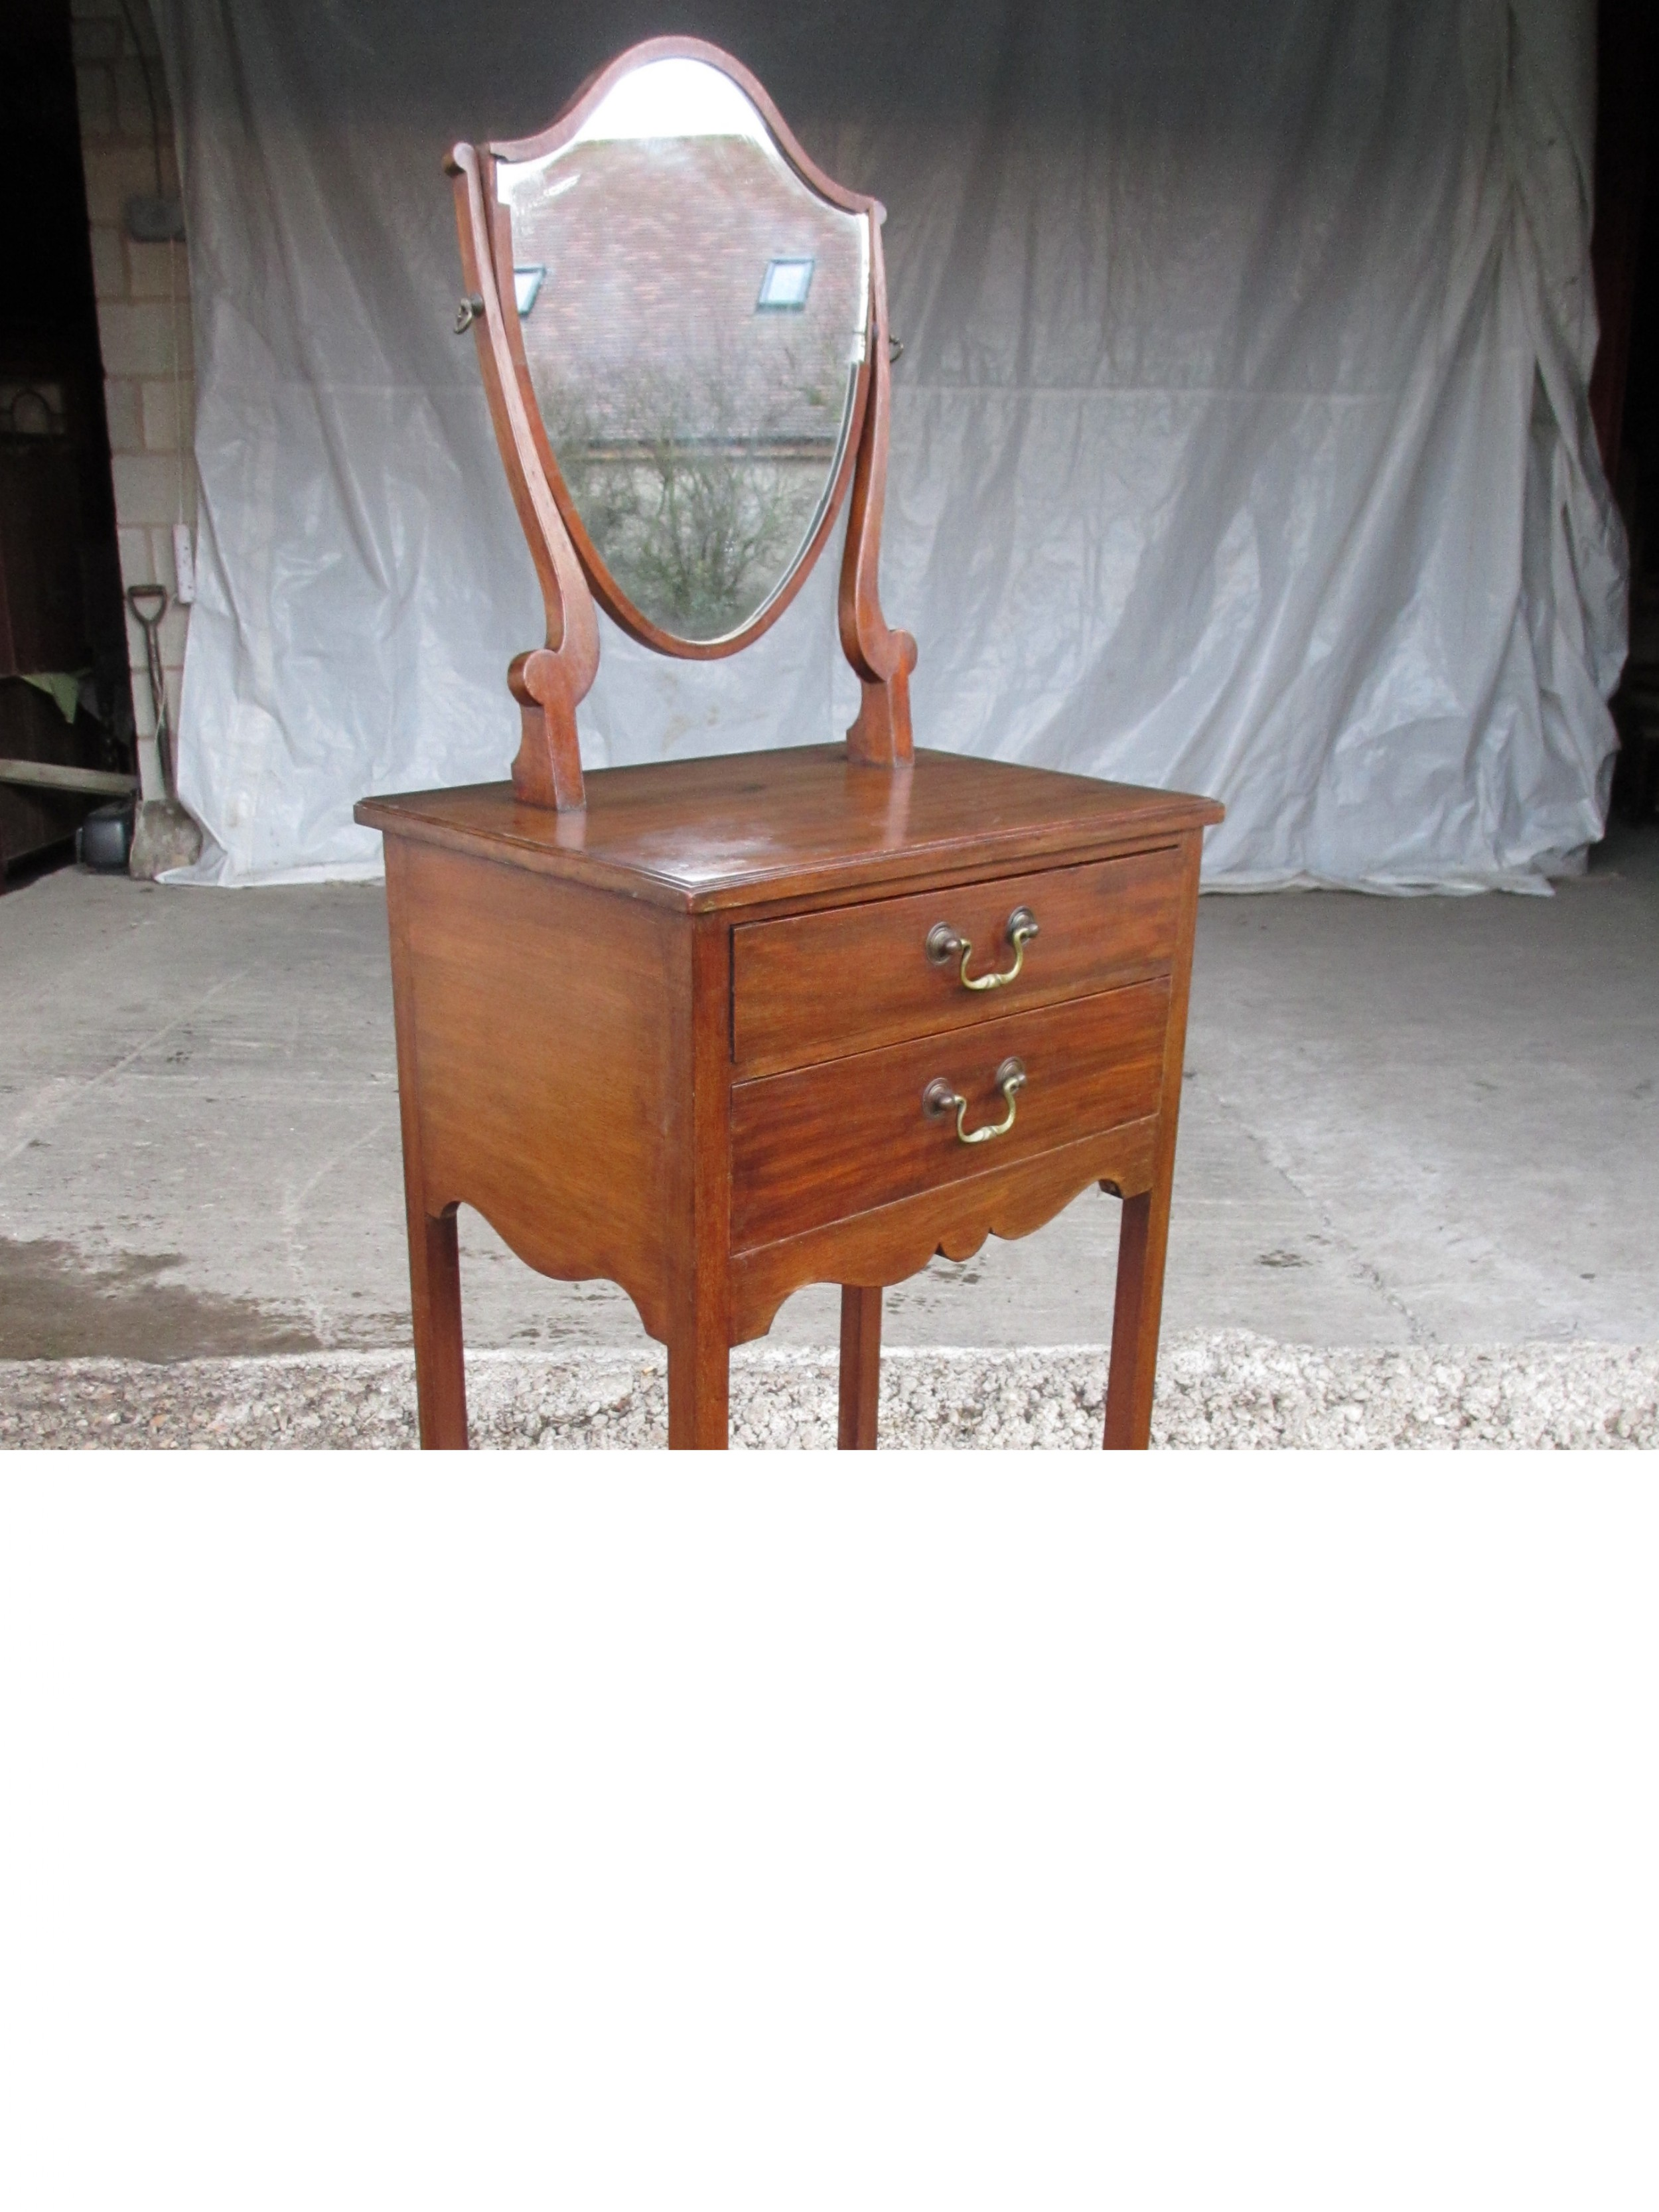 edwardian mahogany shaving stand with shield mirror and 2 drawers